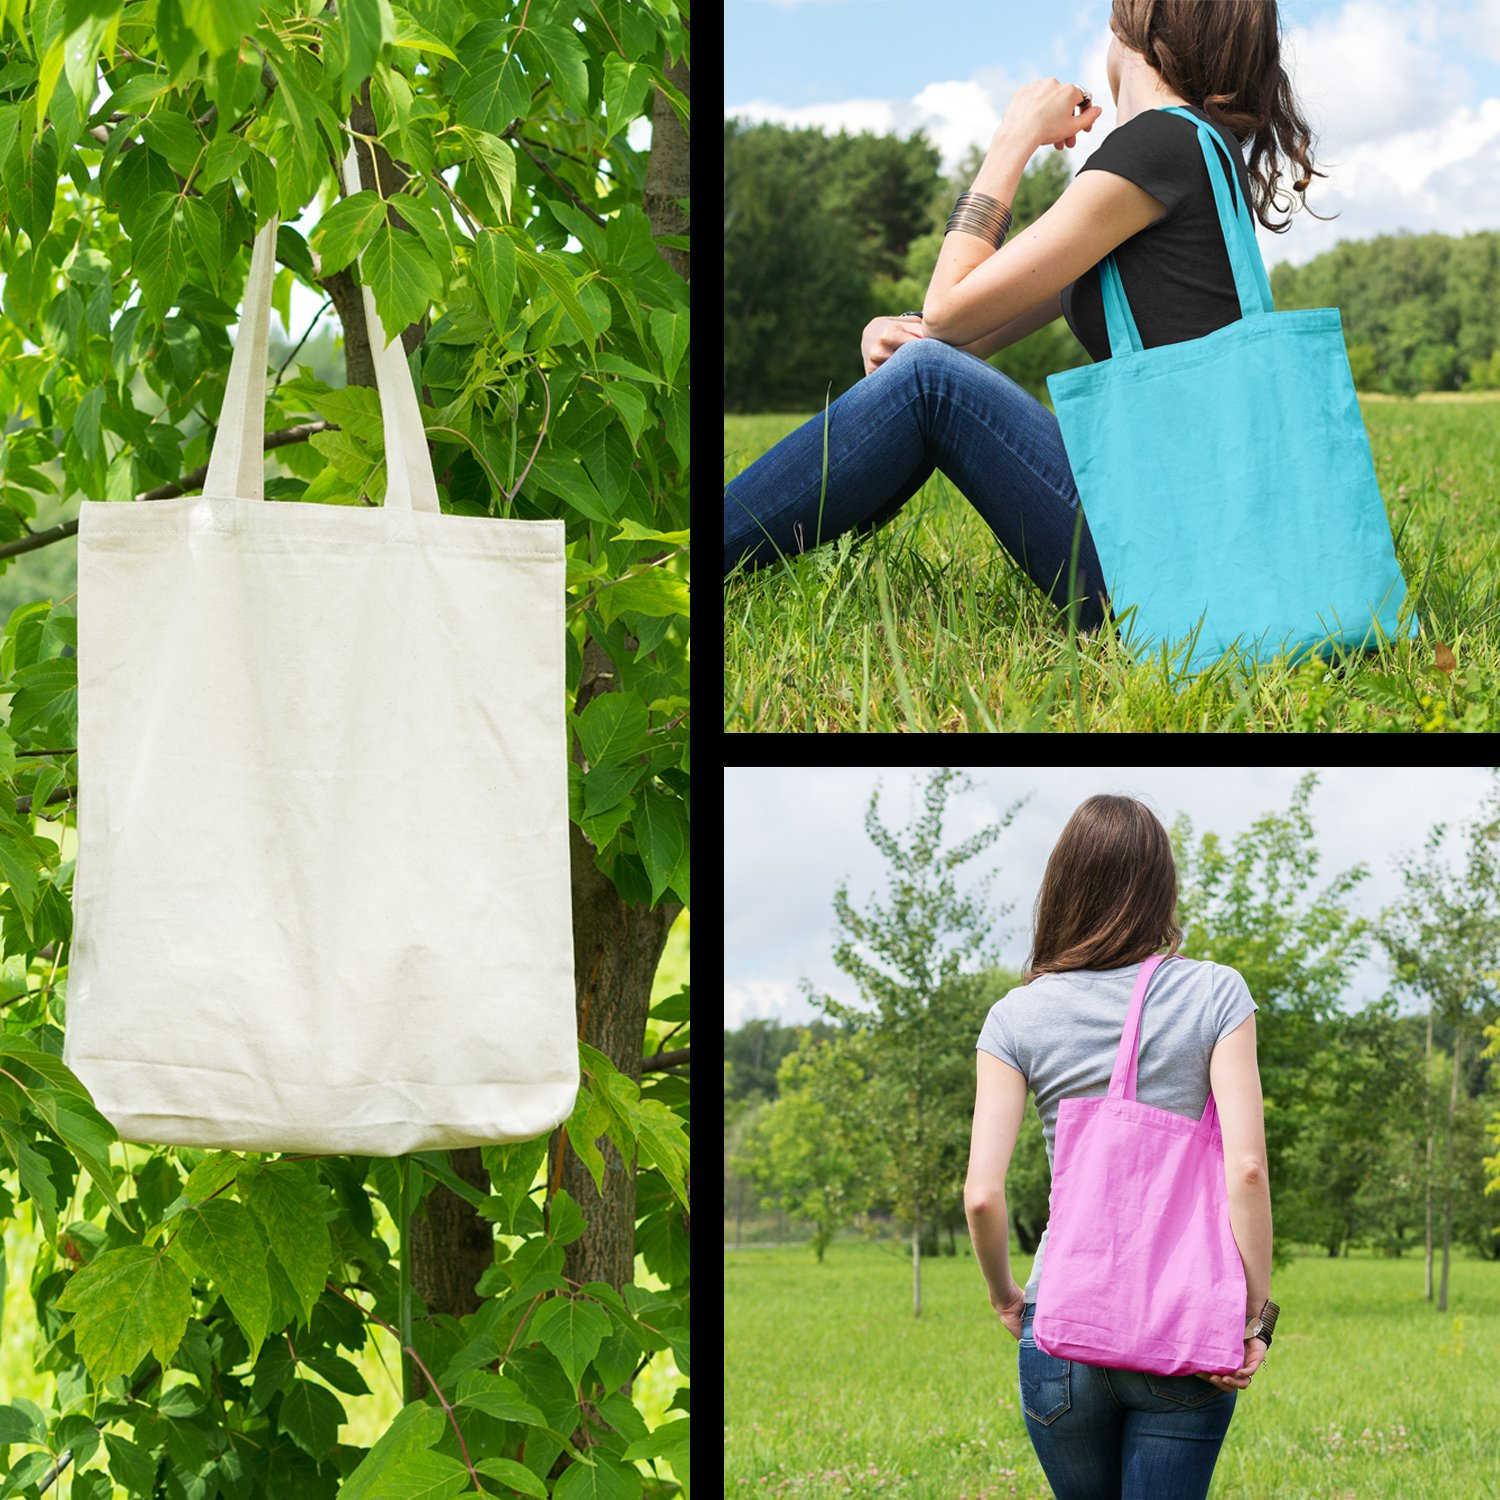 Expression Tees Como Se Llama Bubble Gum Shopping Tote Bag